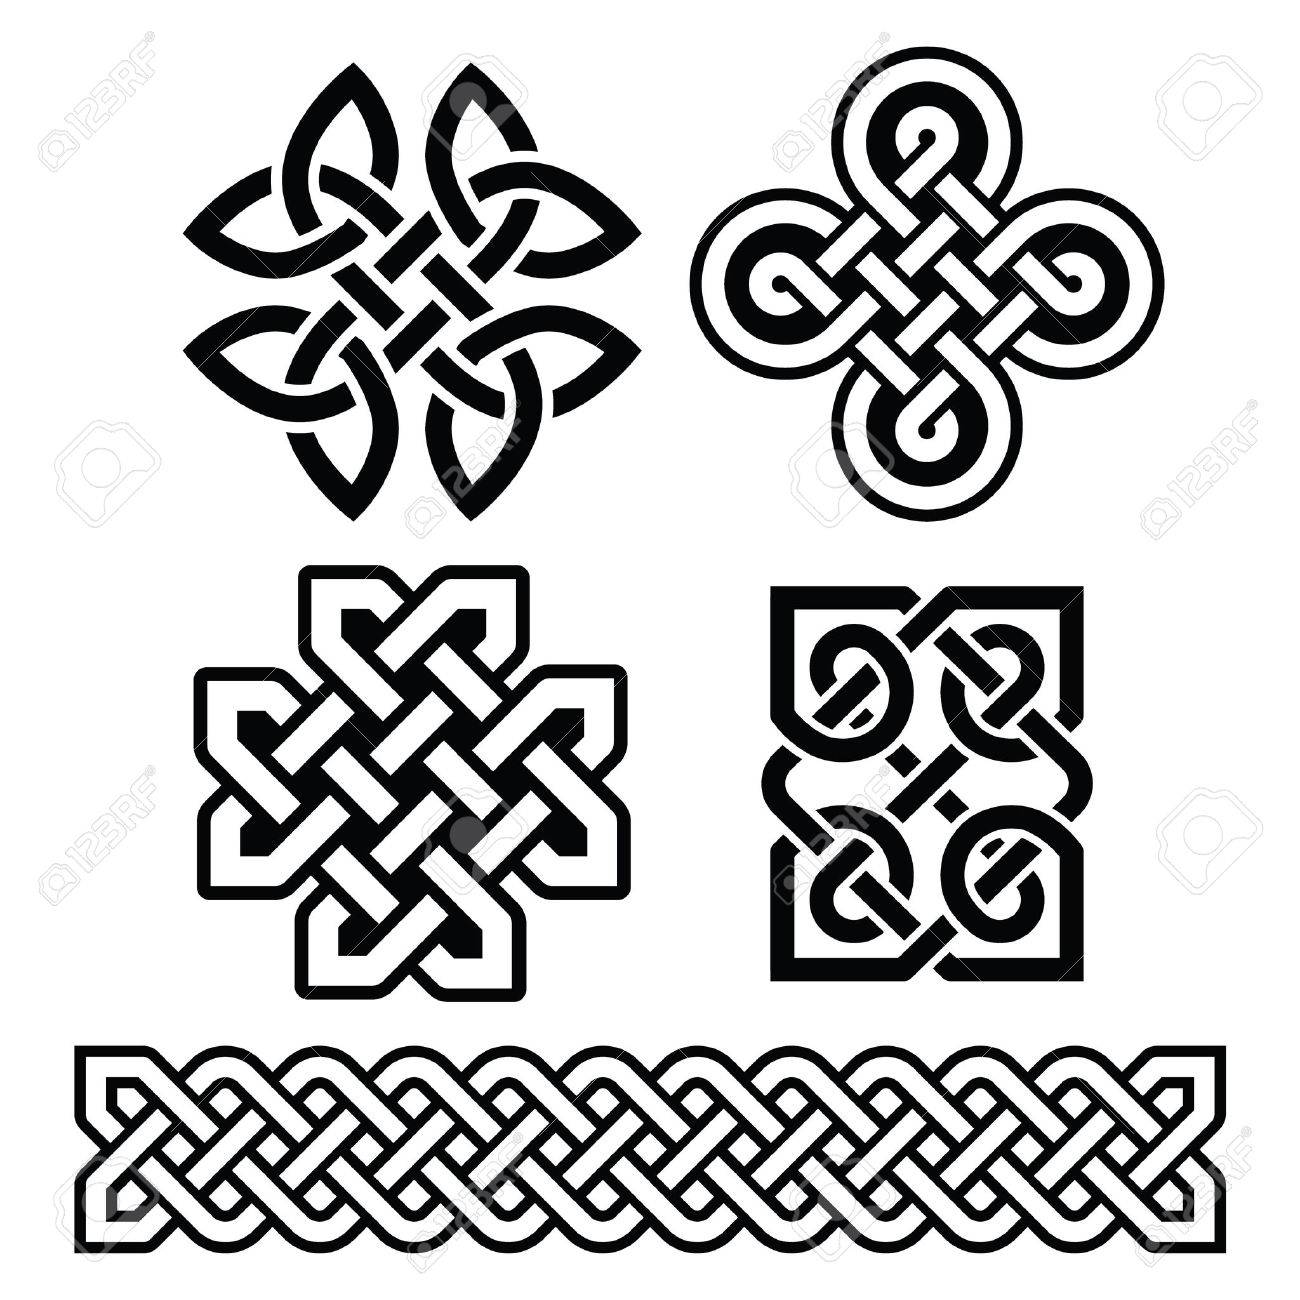 50046326-celtic-irish-patterns-and-braid